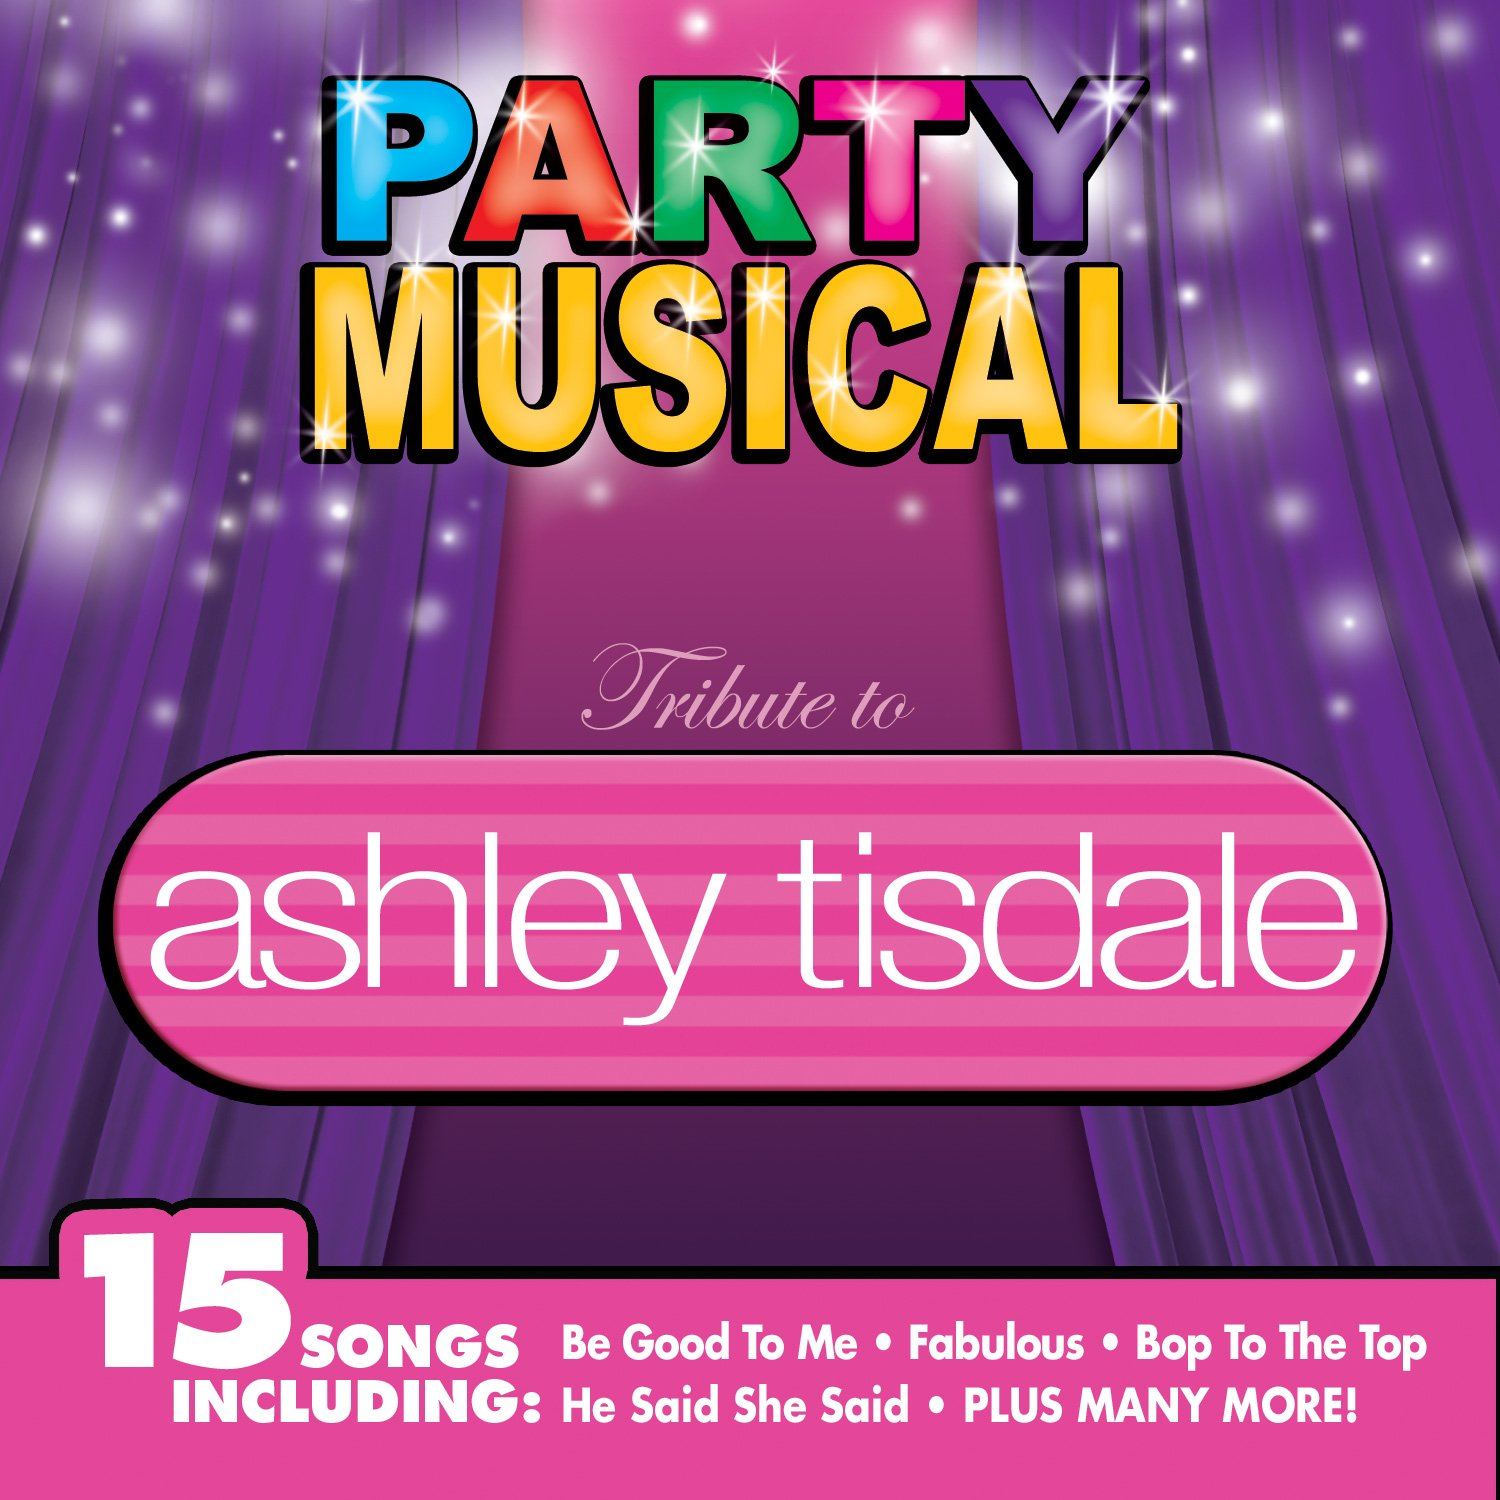 DF TRIBUTE TO ASHLEY TISDALE